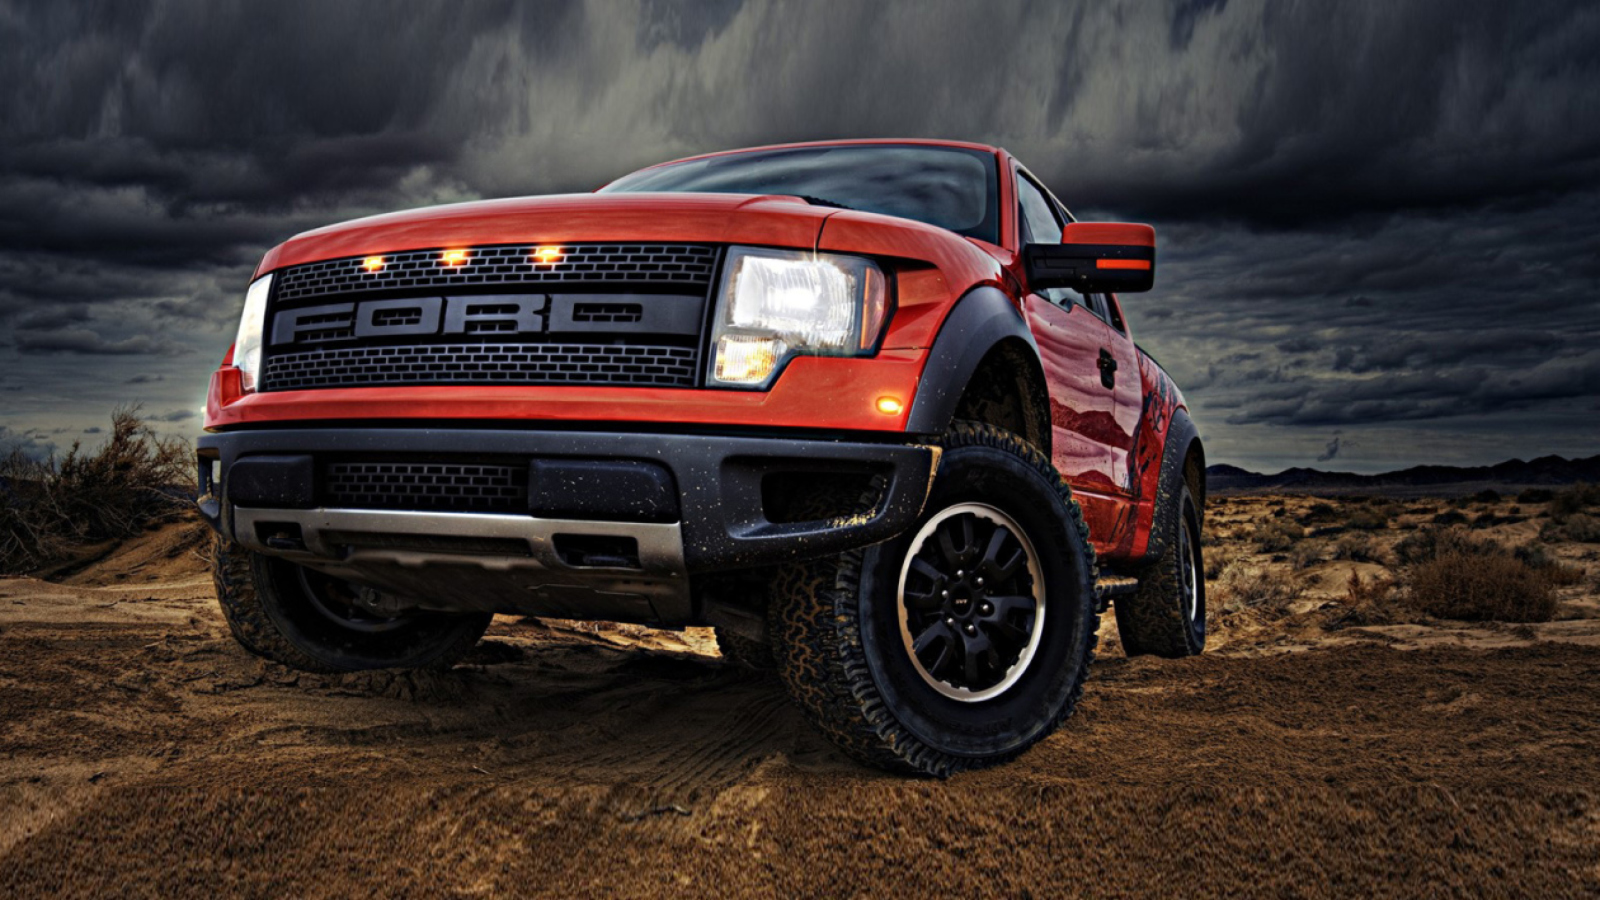 Hd Wallpapers Ford Raptor Wallpaper For Android Fandroidi3dlove Ml